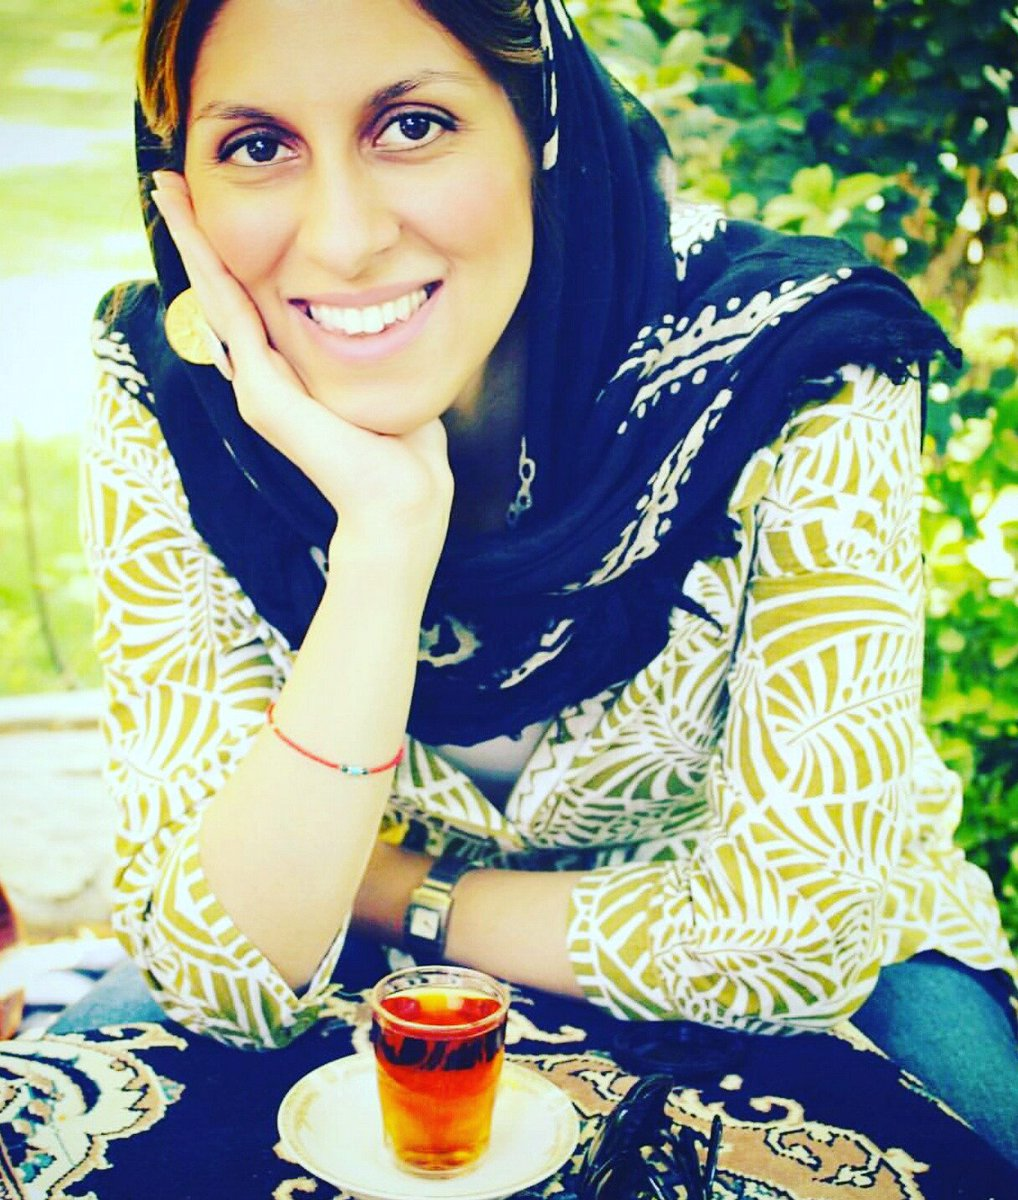 I pray in your wisdom & in the spirit of #compassion you can release a charity worker and mother who is loyal to #Iran Please grant a #Humanitarian release, show Islamic values .@khamenei_ir .@Azizjafaari_ir @Jeremy_Hunt @Bagheri_org @MizanNewsAgency @mbachelet #FreeNazanin